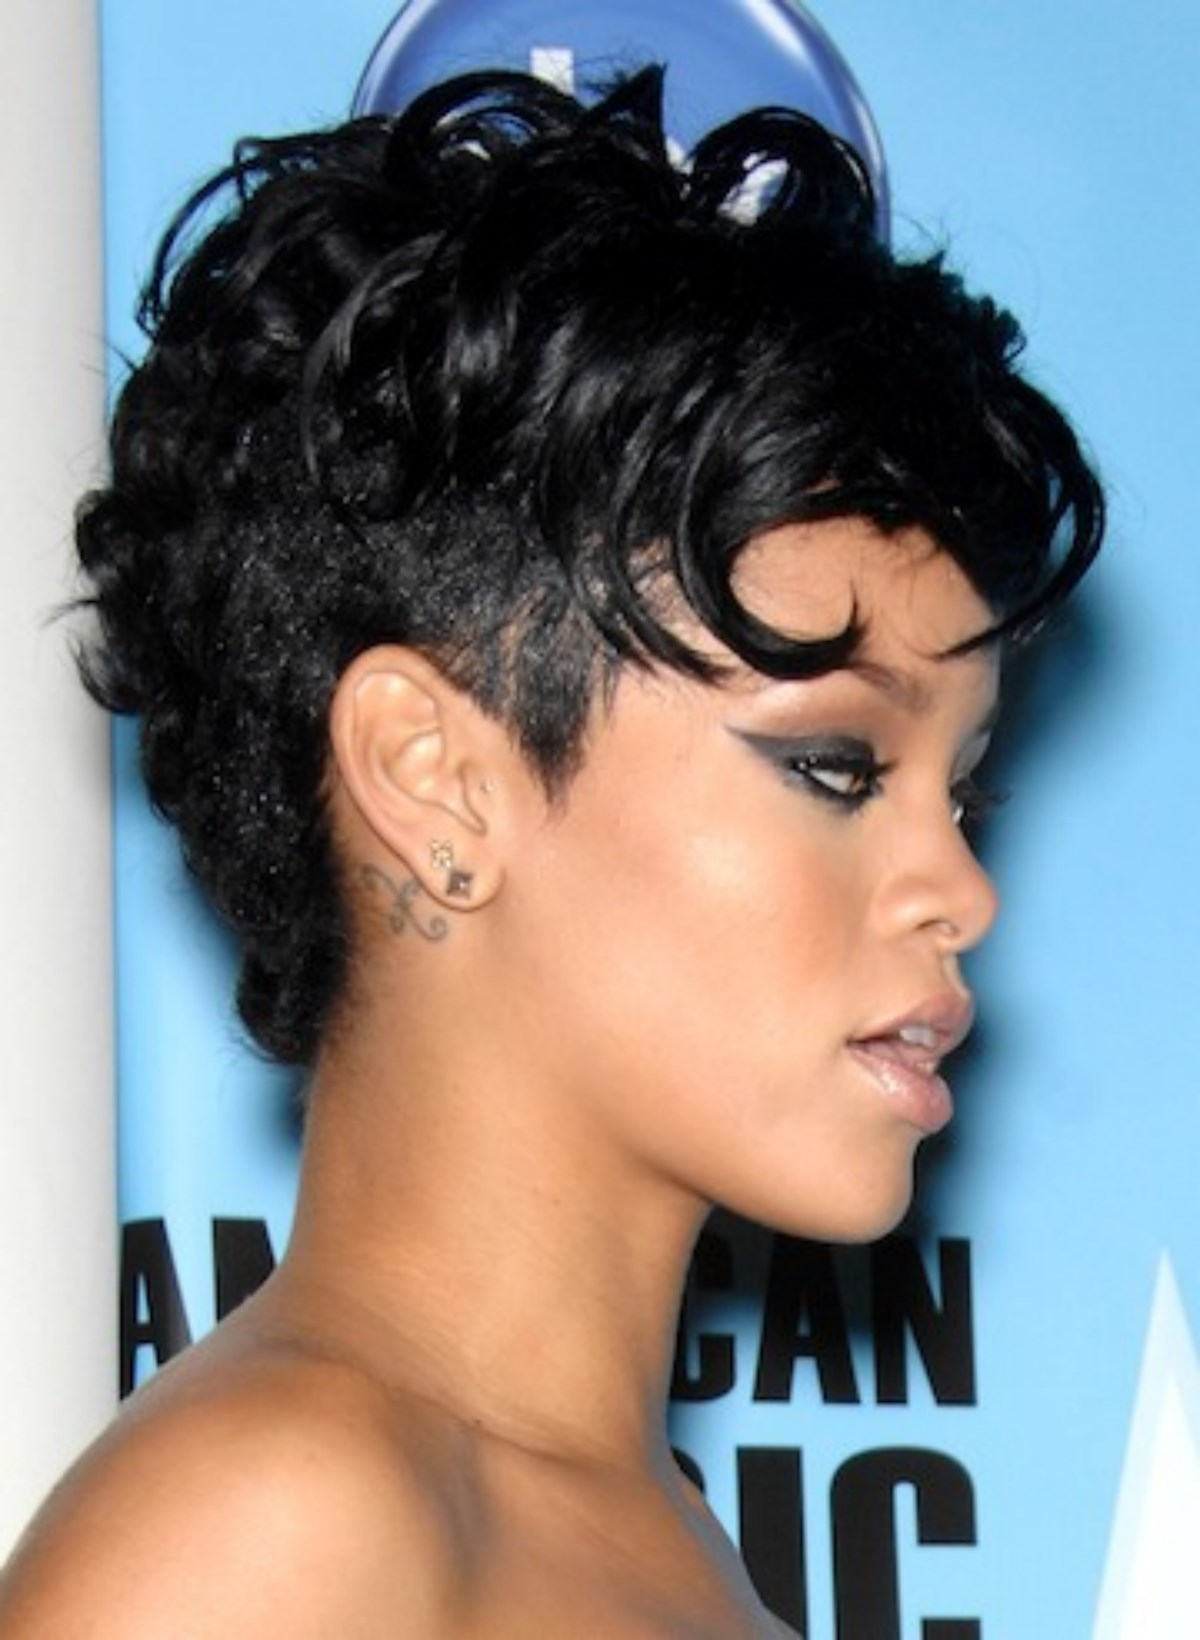 Stupendous Black Short Haircuts Hairstyle For Women Amp Girls A Style Tips Short Hairstyles For Black Women Fulllsitofus